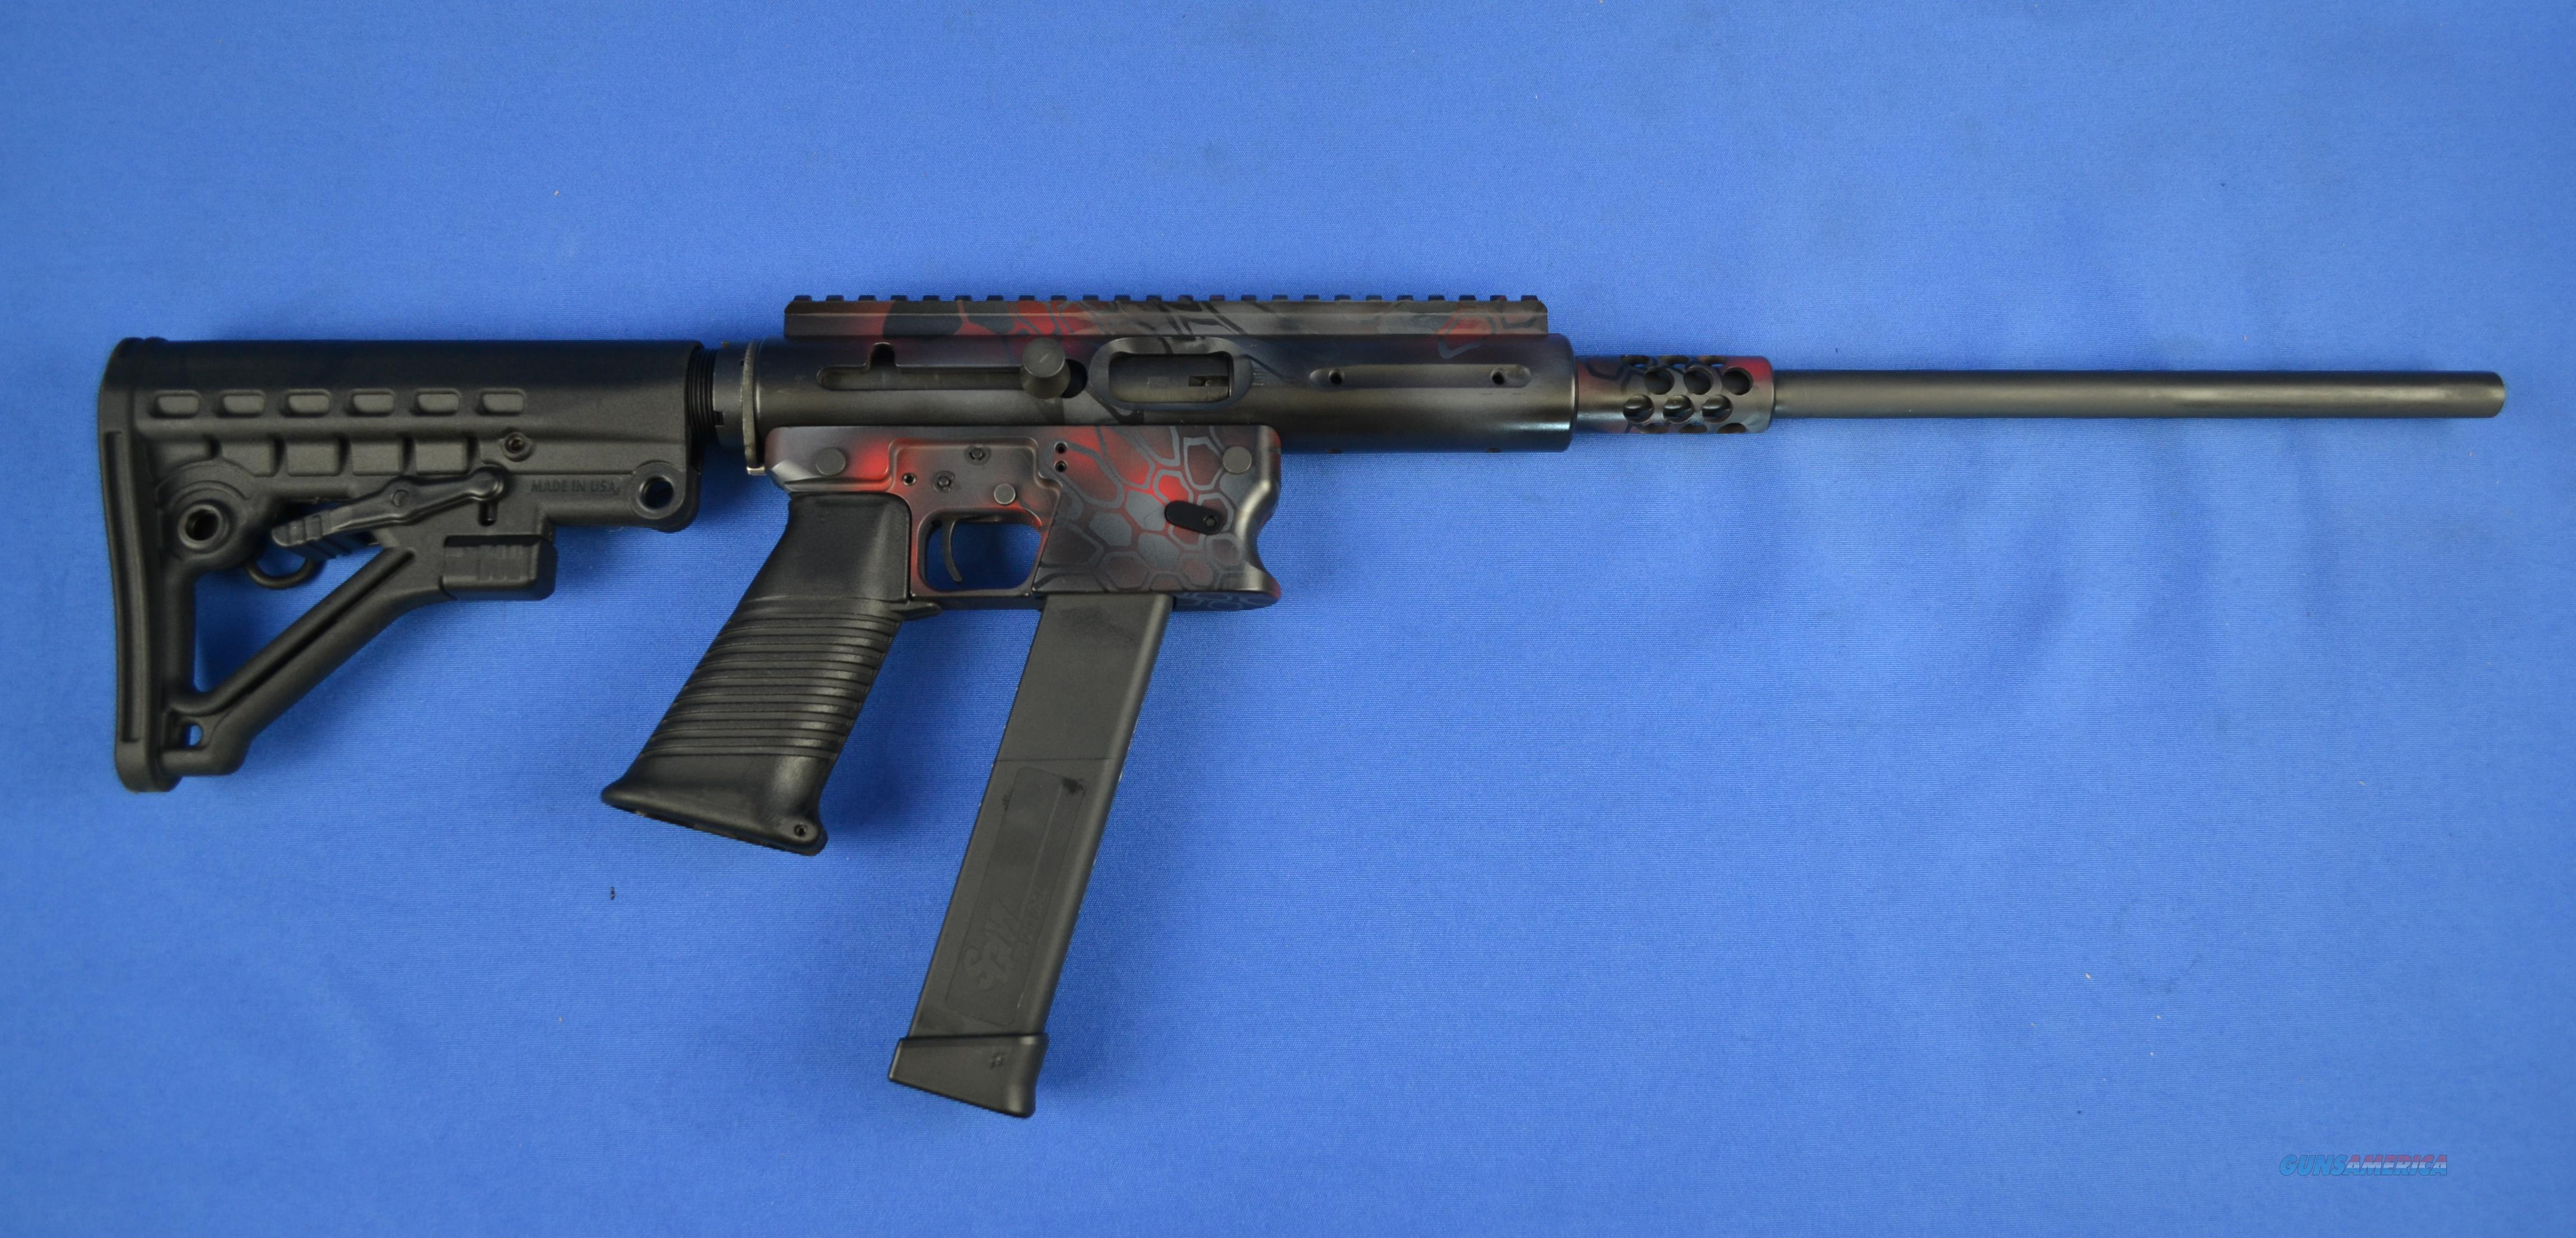 TNW ASR 40SW CARBINE KRYPTEK RED AERO SURVIVAL RIFLE  EXCLUSIVE 10MM 45 9MM 357 22LR  Guns > Rifles > Custom Rifles > AR-15 Family